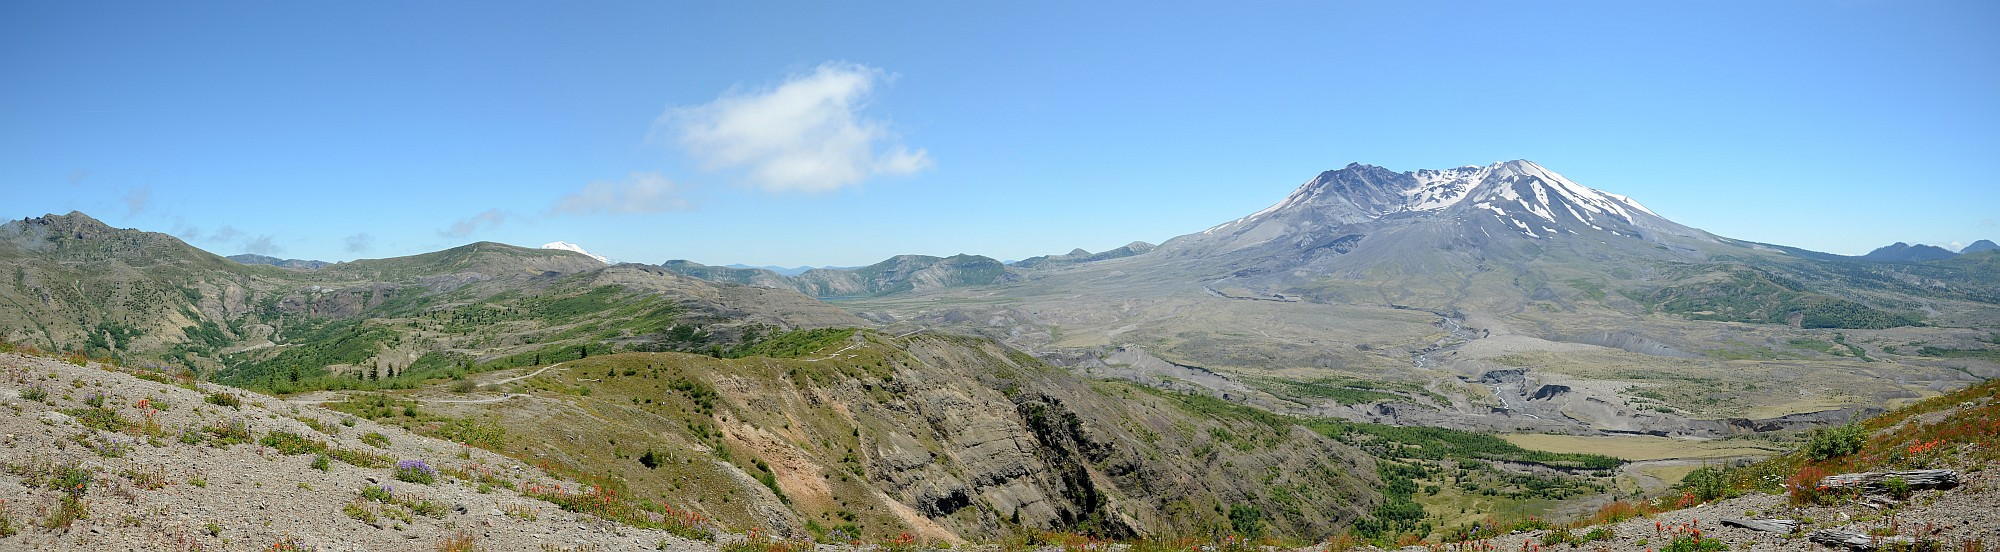 Mt. St. Helens Panorama